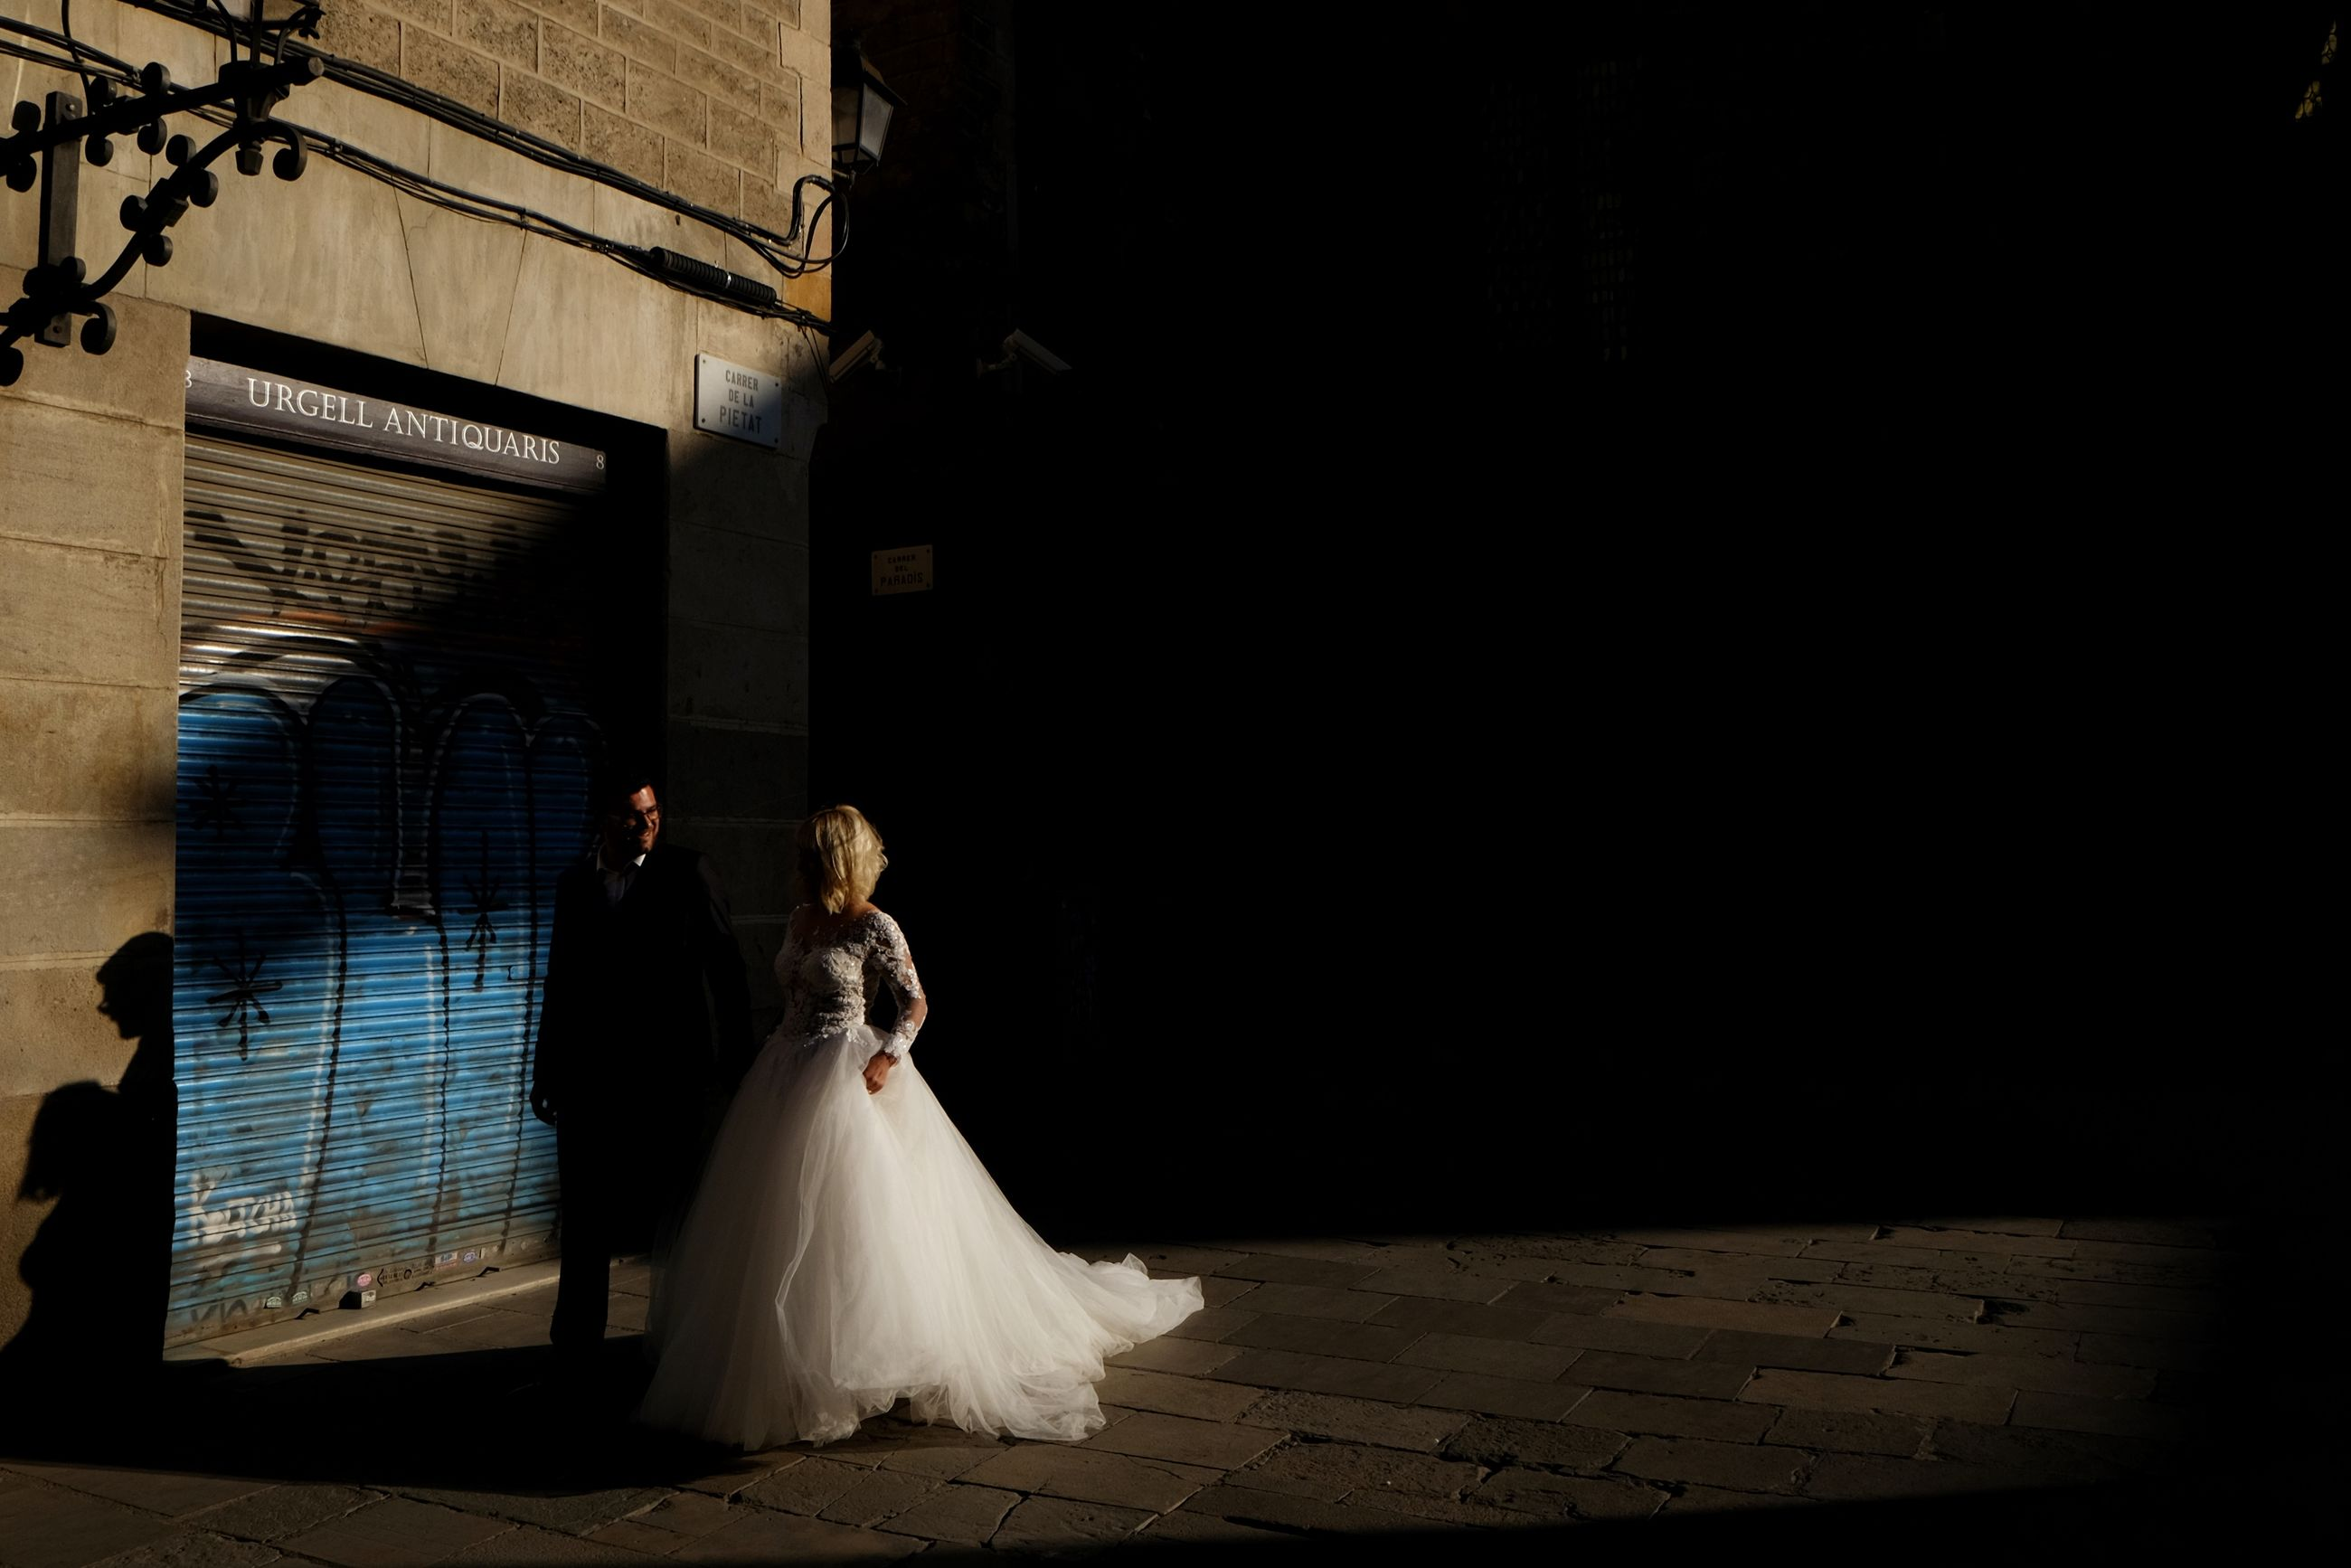 real people, wedding, bride, men, wedding dress, women, built structure, love, groom, togetherness, walking, bridegroom, celebration, full length, night, life events, architecture, indoors, building exterior, well-dressed, people